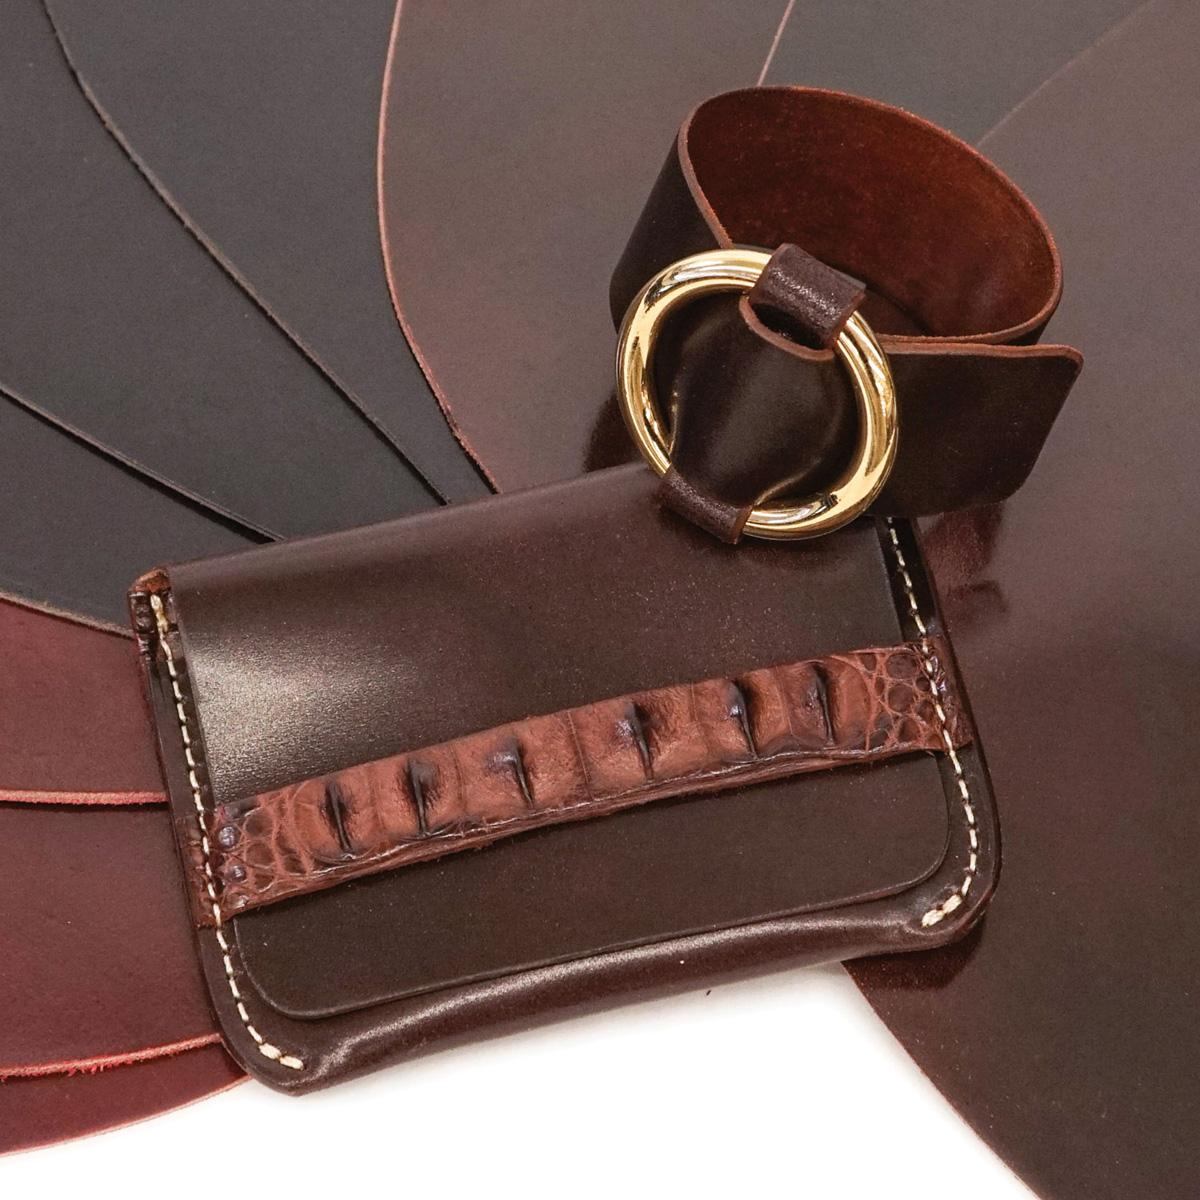 a shell cordovan wallet and cuff sit on top of several shell codorvan pieces in three colors